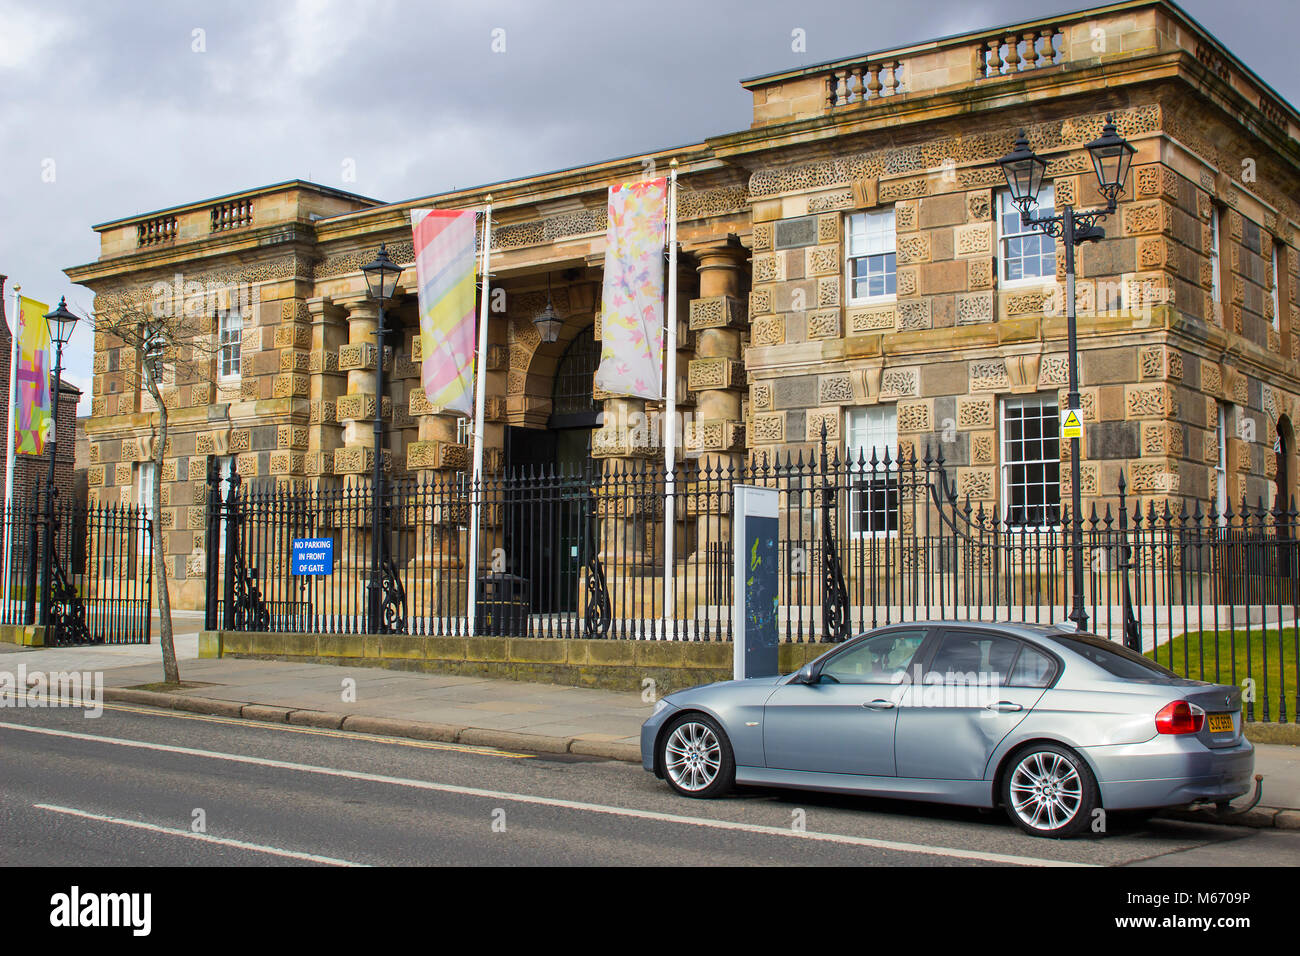 The old Victorian prison on the Crumlin Road in Belfast Northern Ireland now a popular tourist attraction and reception - Stock Image